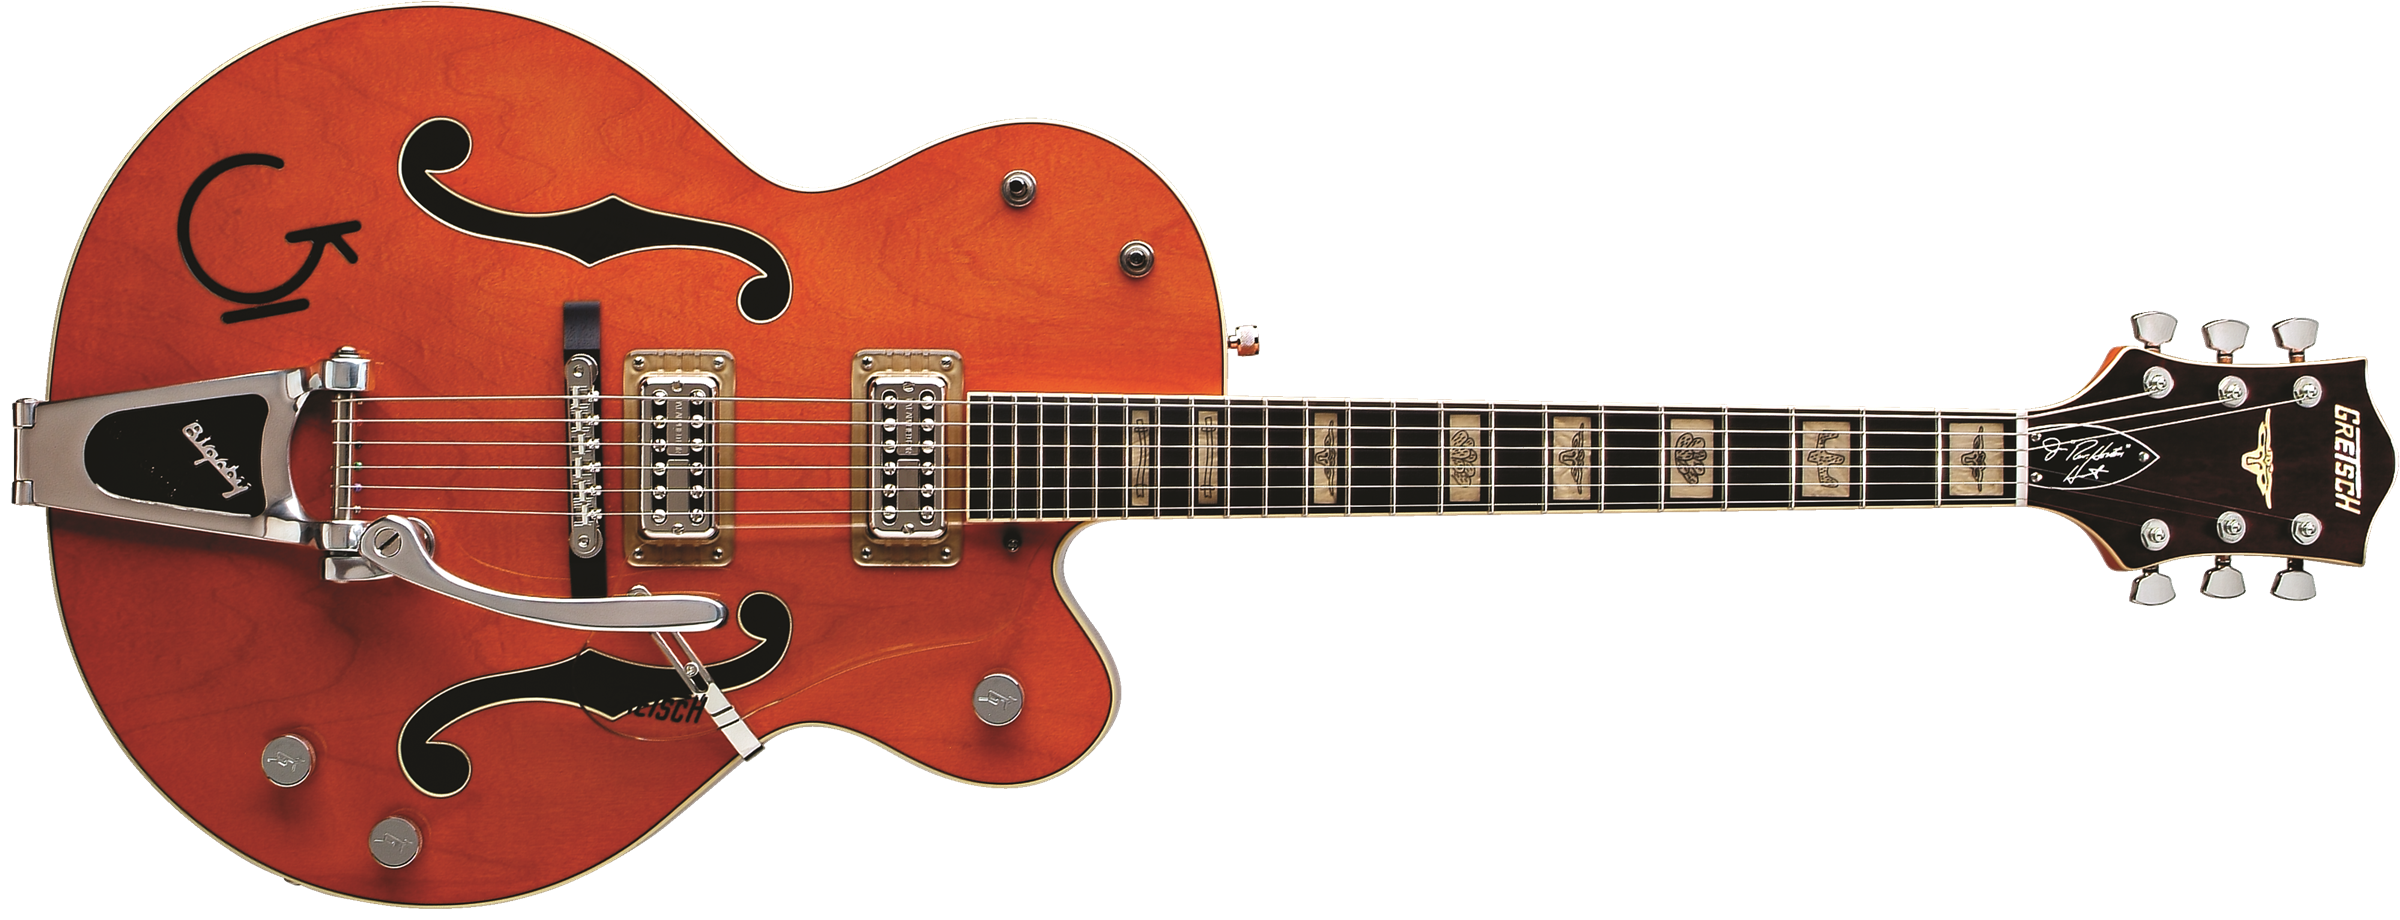 GRETSCH G6120RHH Reverend Horton Heat Signature Hollow Body with Bigsby, Ebony Fingerboard, Orange Stain, Lacquer